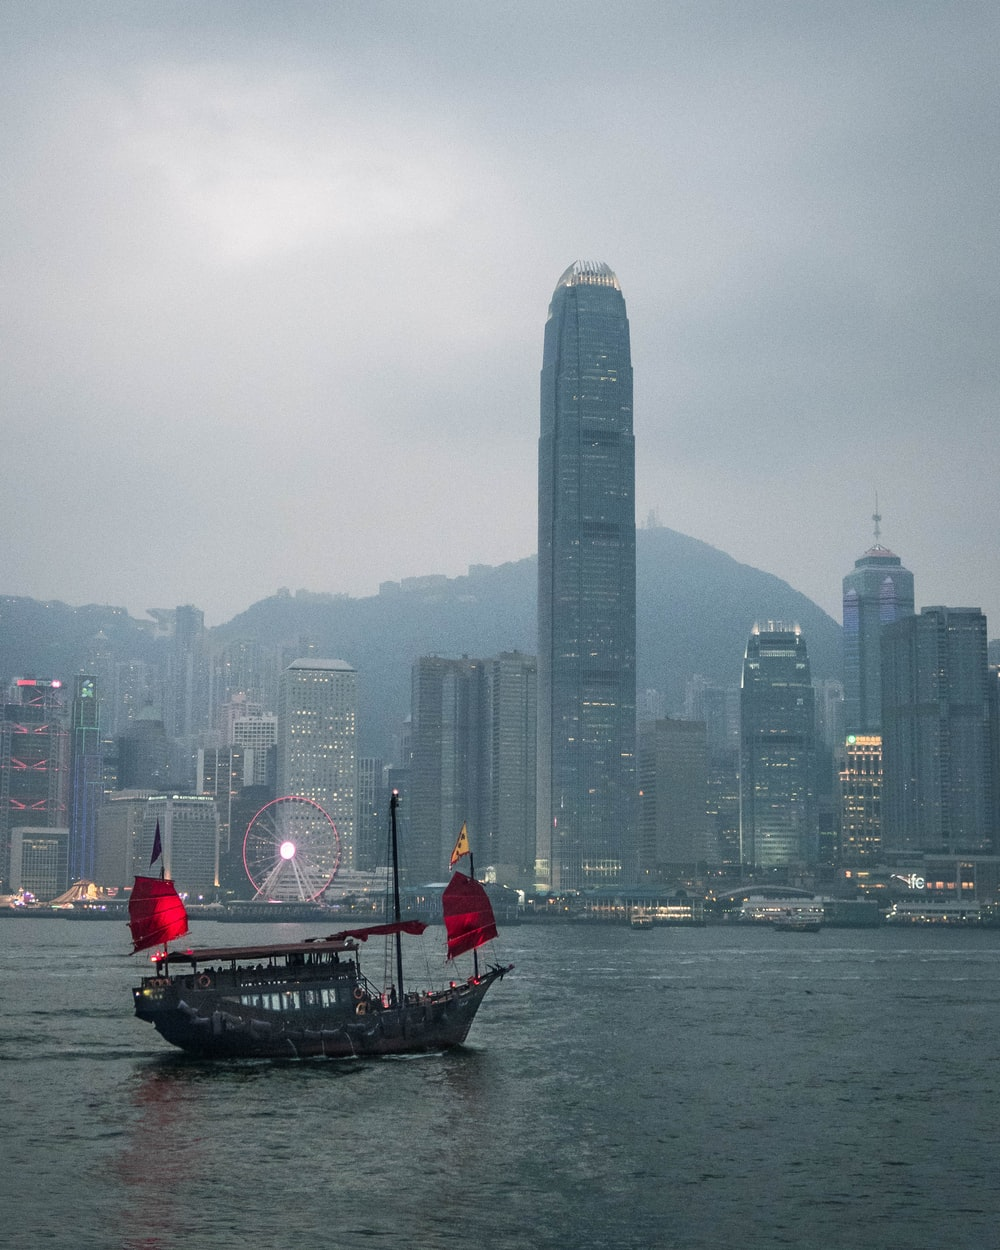 people riding on boat on water near city buildings during daytime